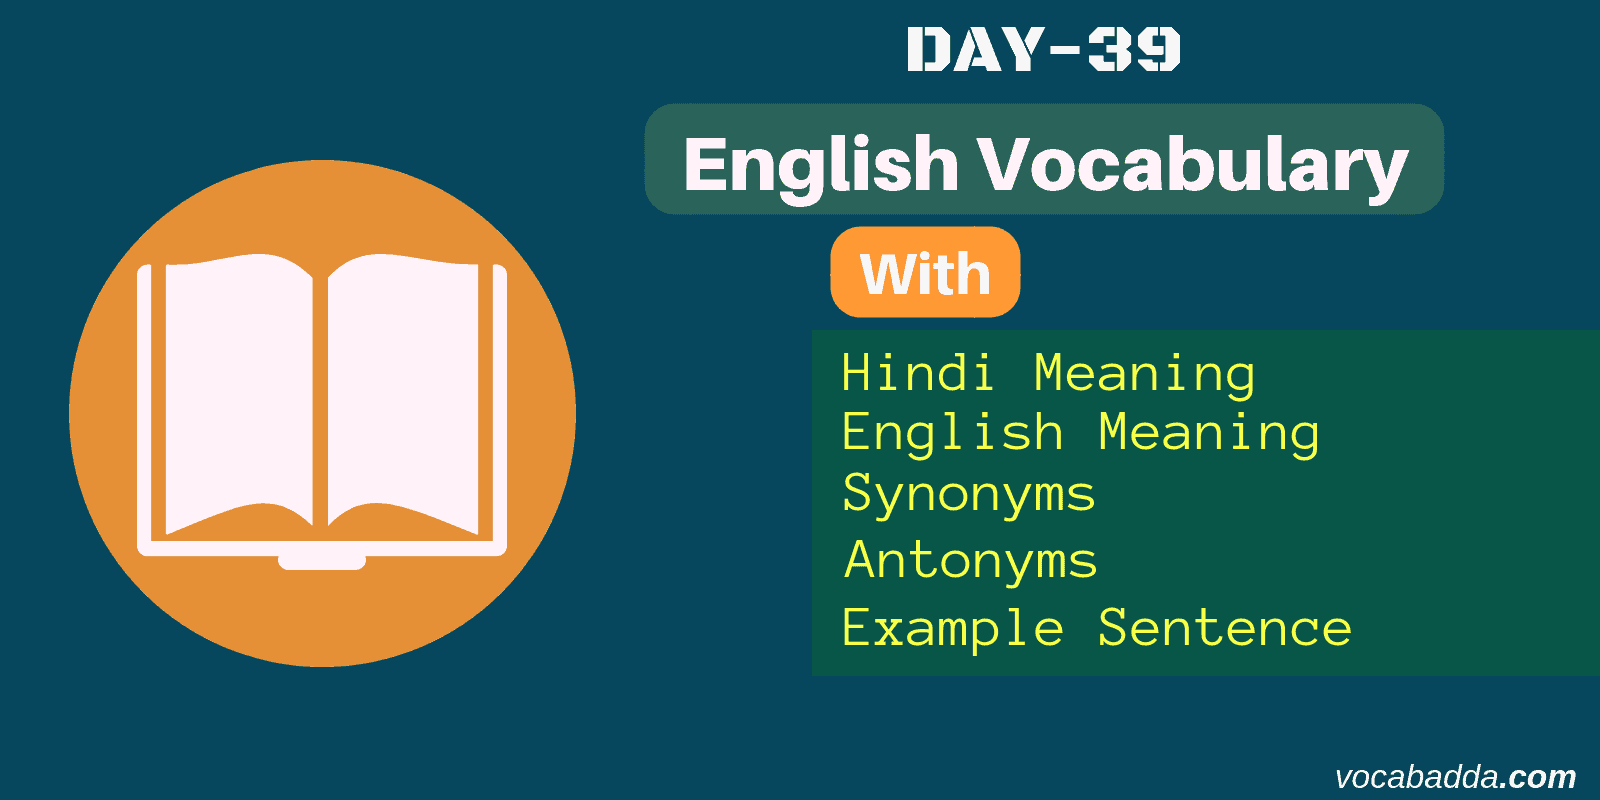 Important vocabulary word list with example sentence Day-39